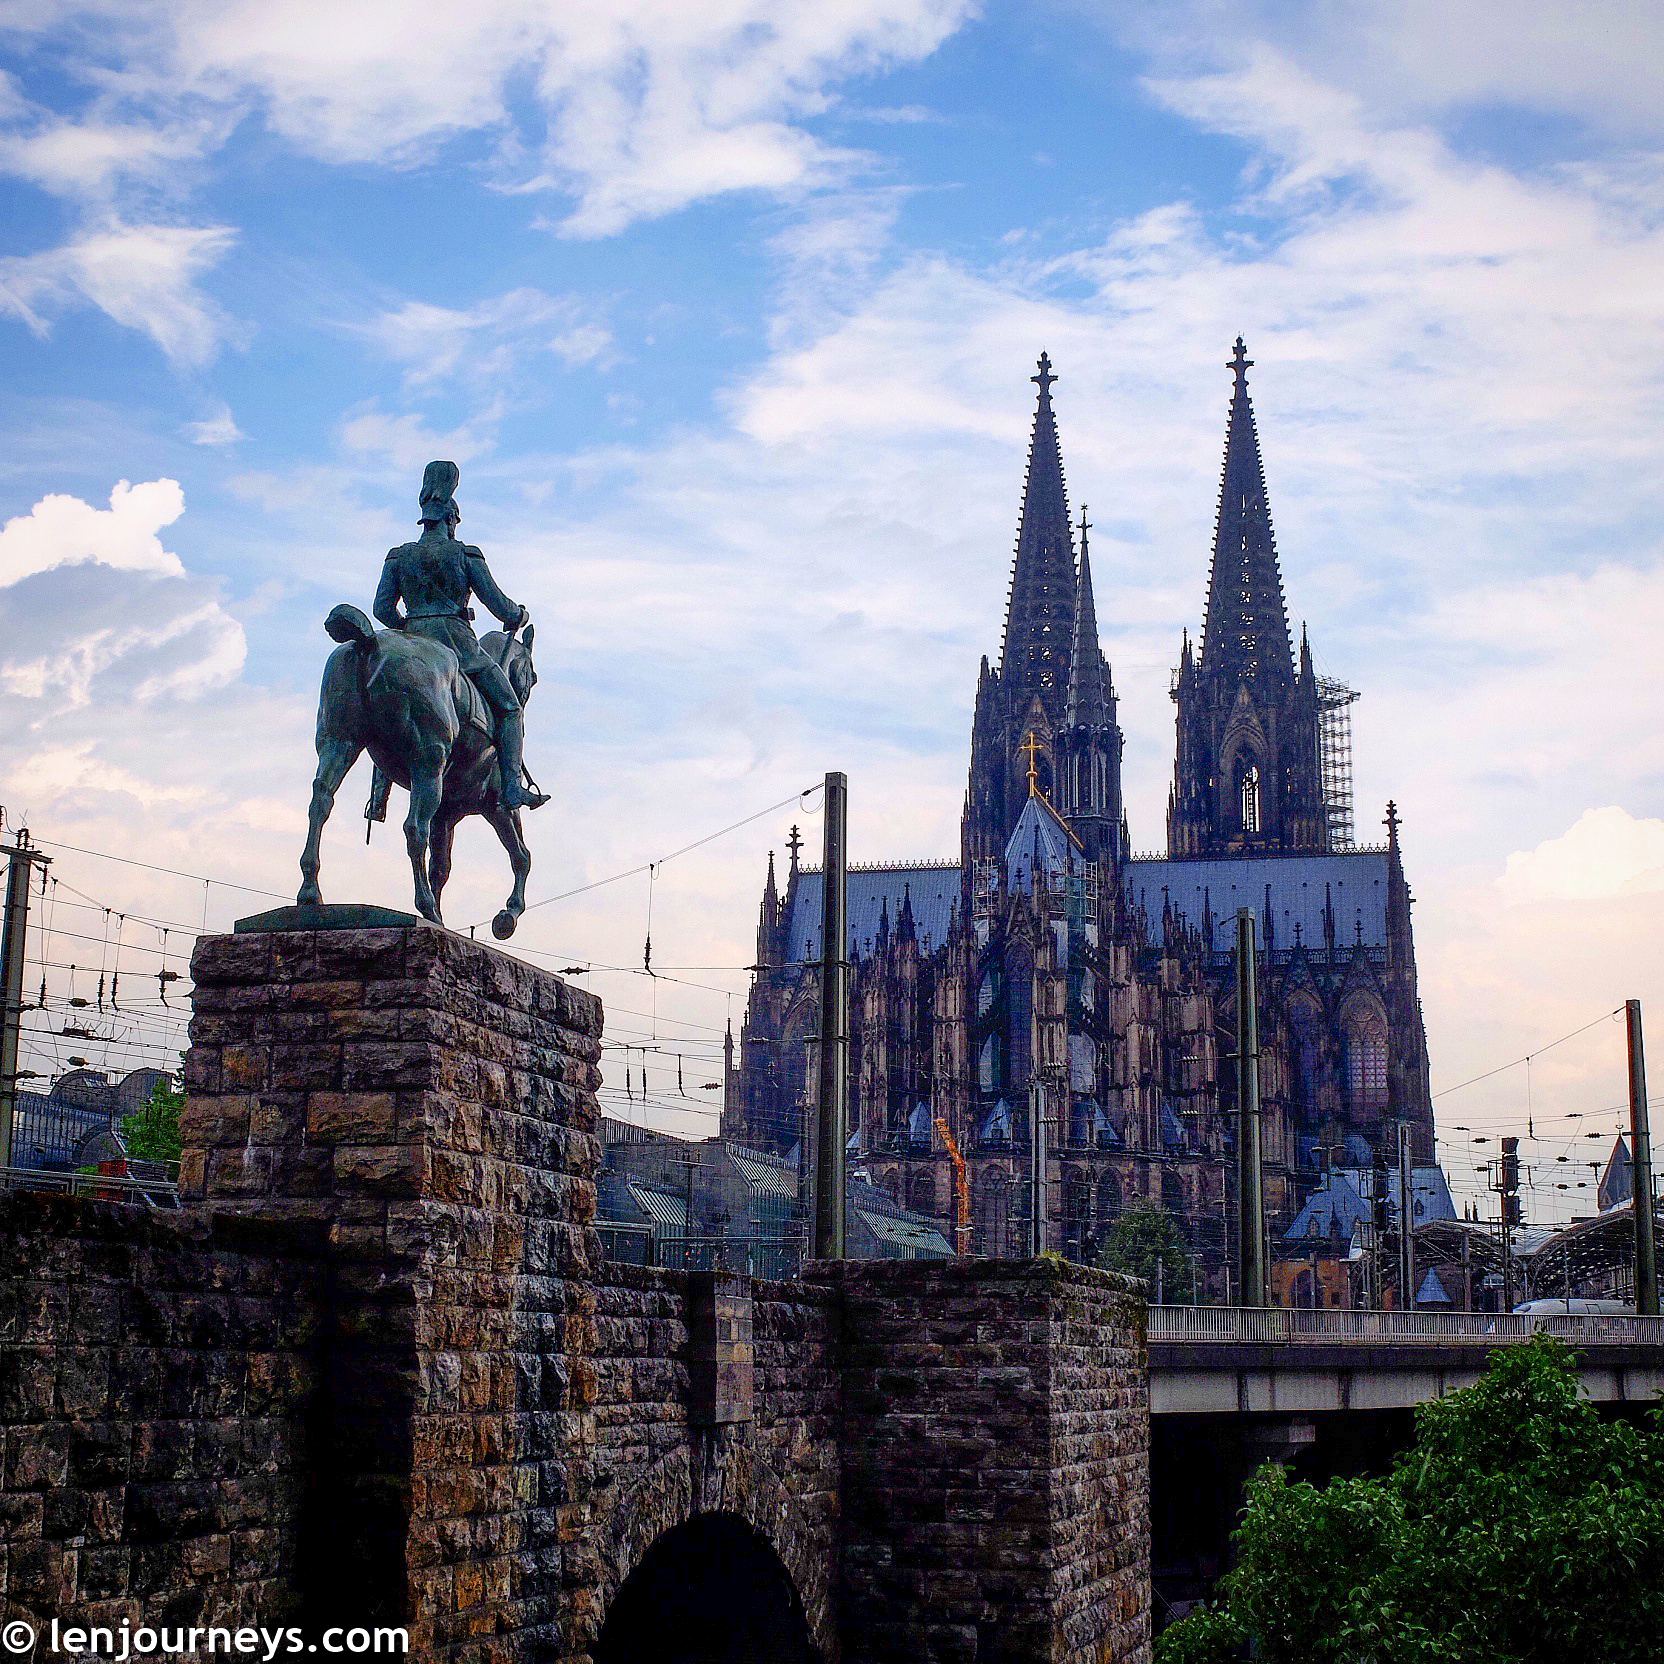 Cologne Cathedral with its twin spires